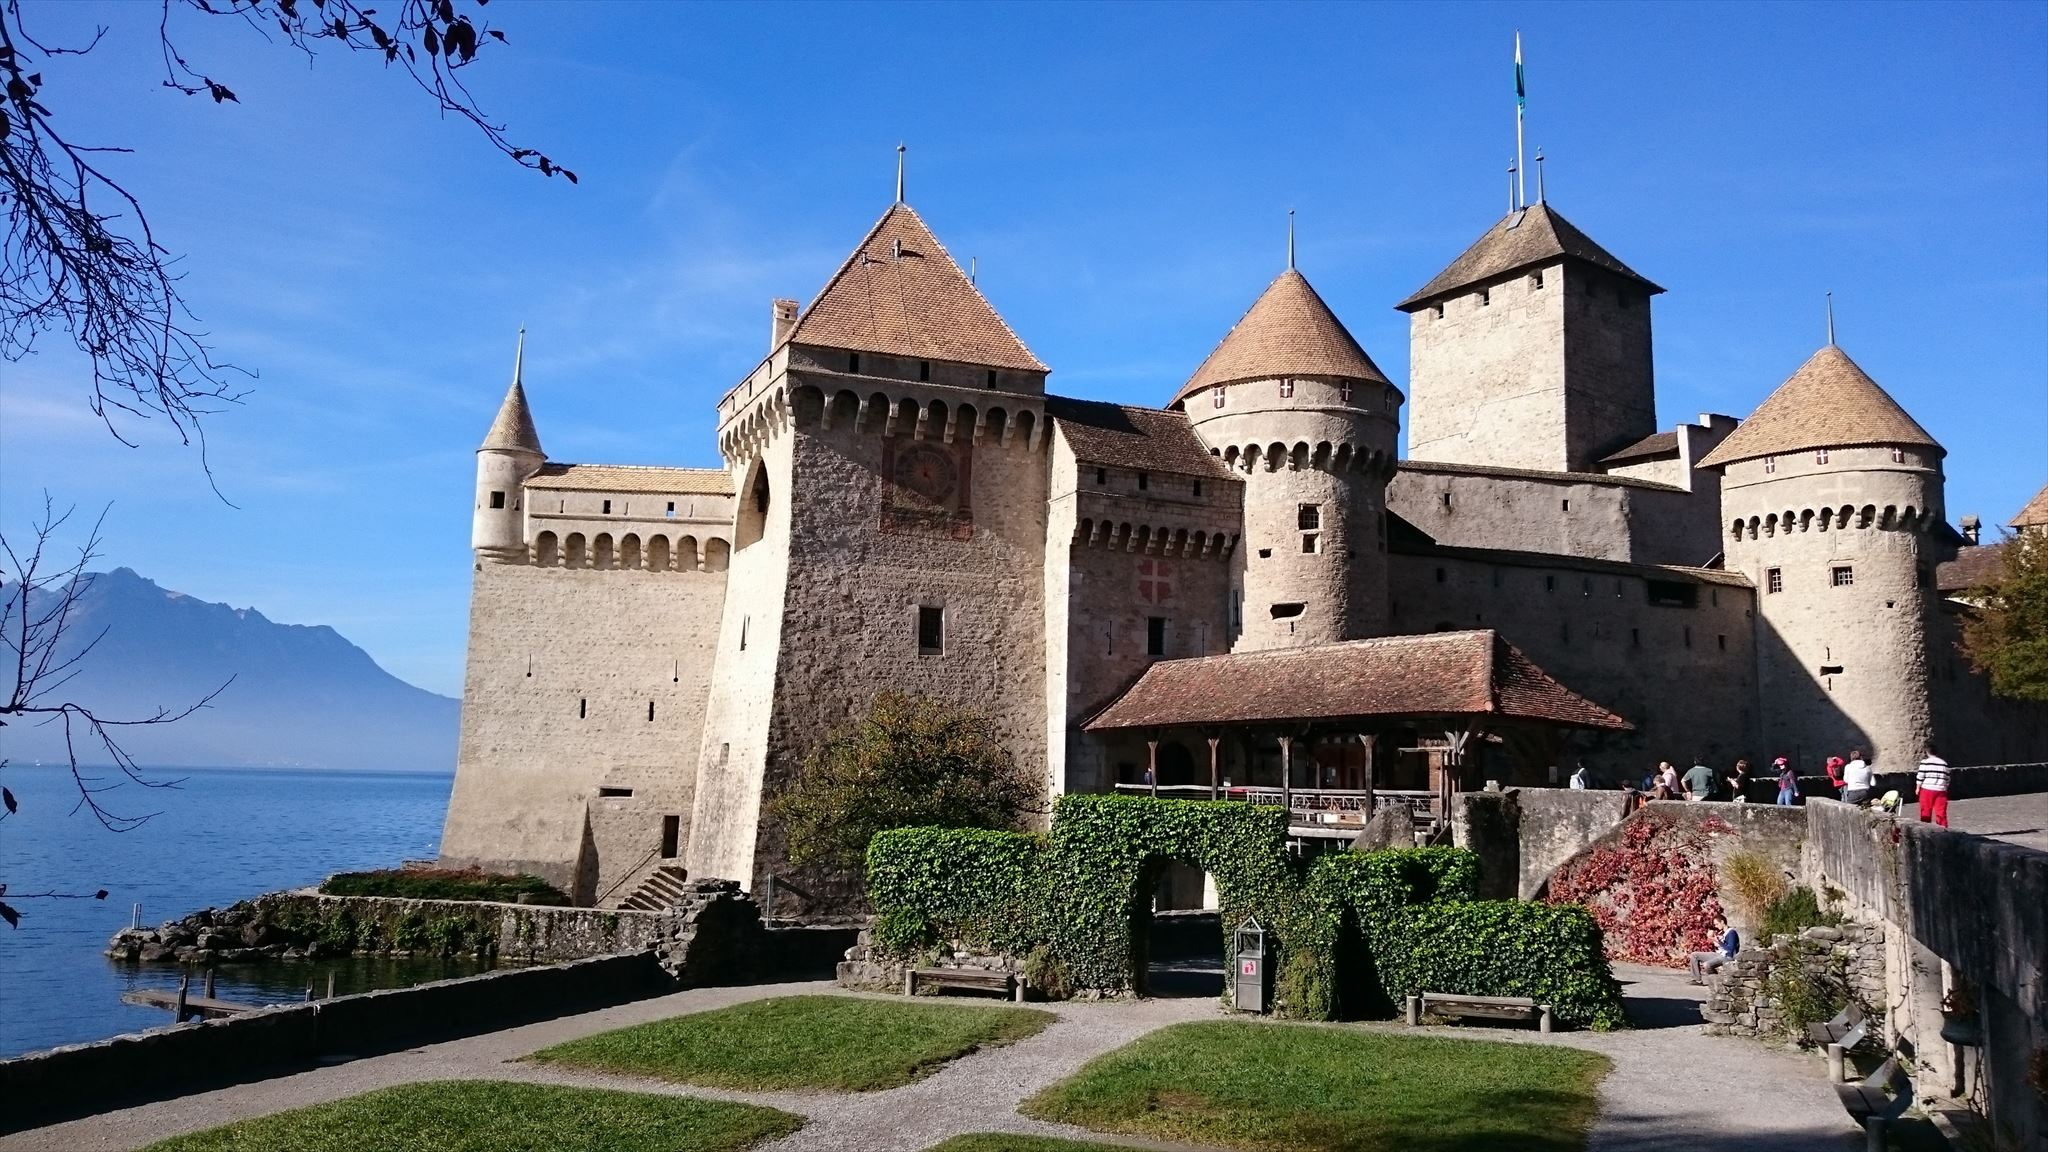 Chateau de Chillon: A Fairytale Castle with a Darker History - Peak Transfer